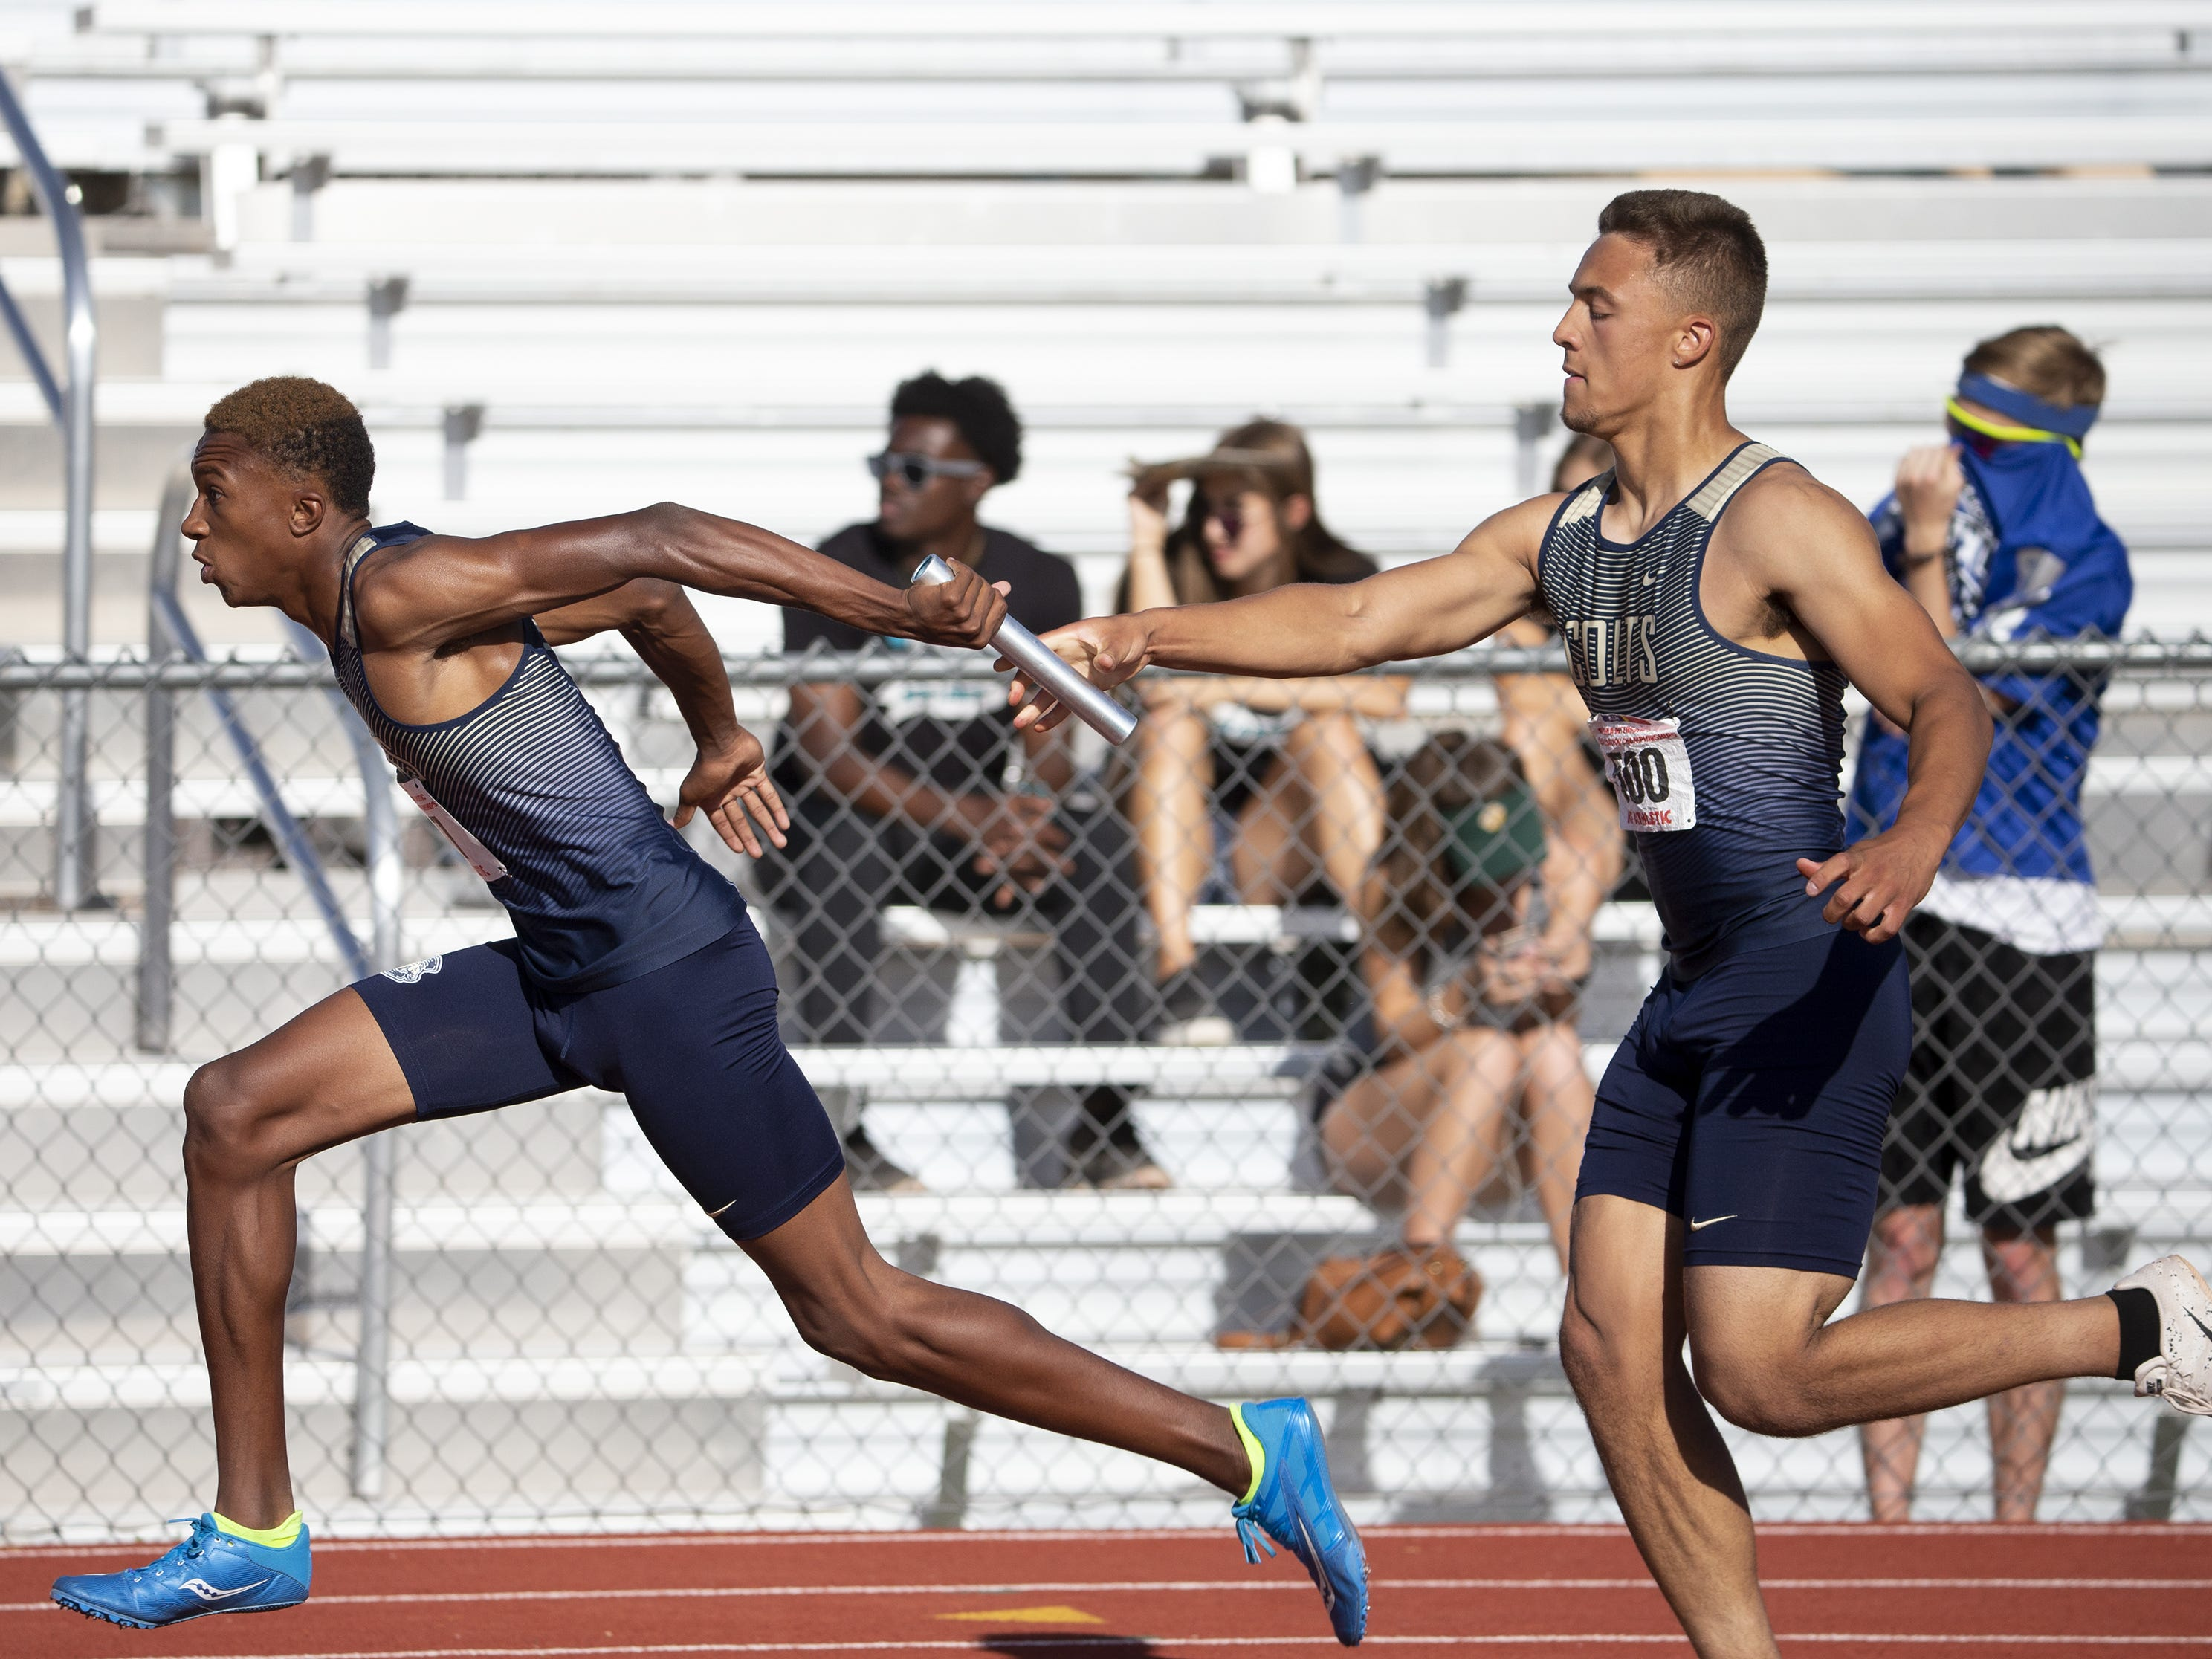 Casteel competes in Boys 4X400 Meter Relay Division II during the state track and field meet at Mesa Community college on May 1, 2019.